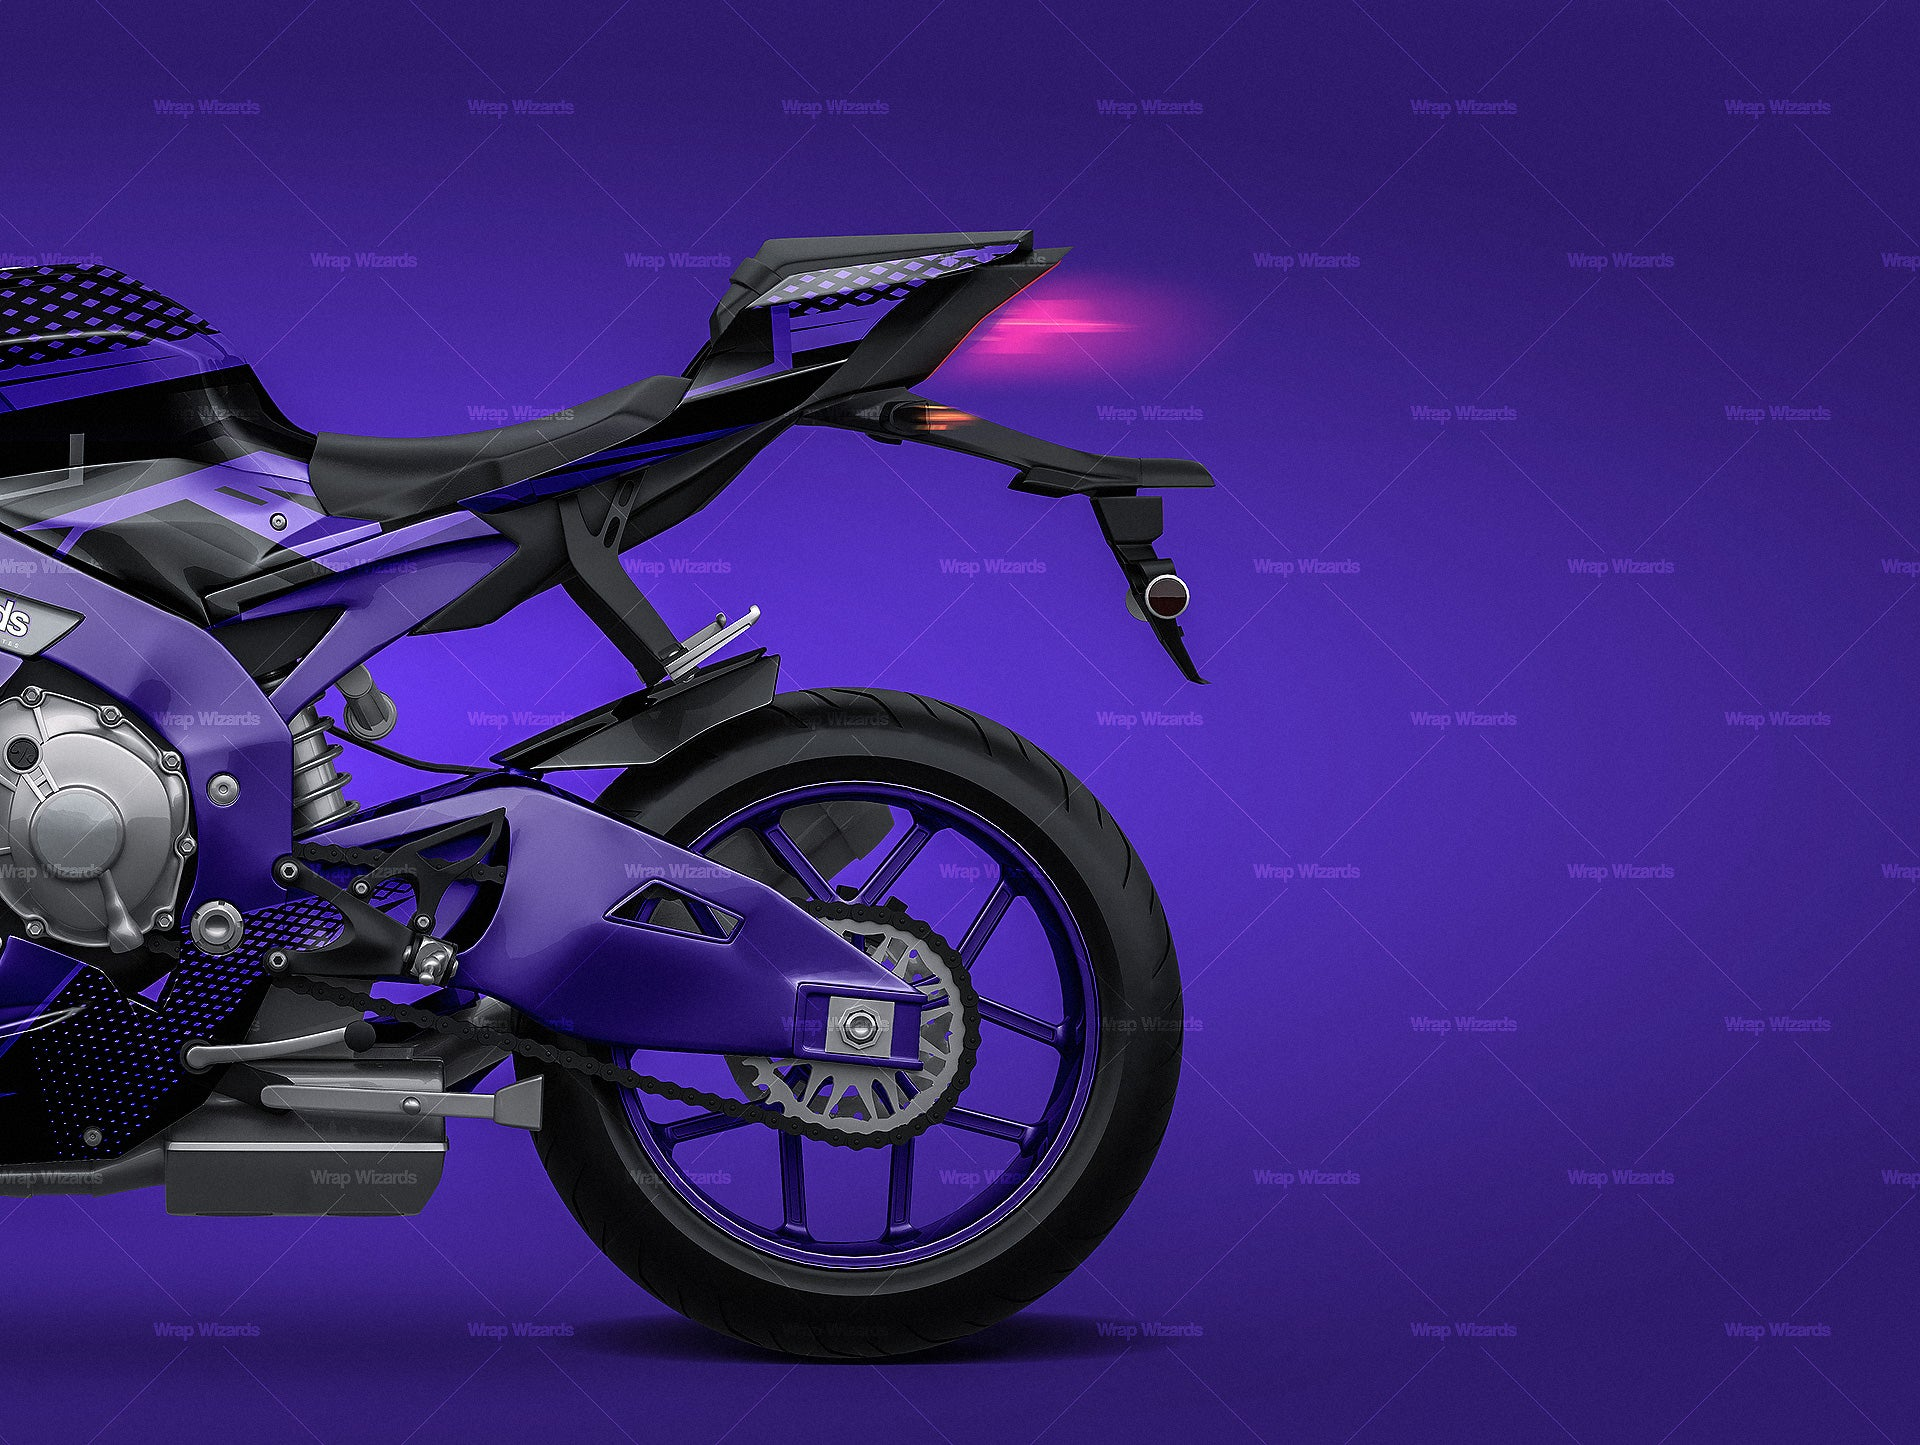 Yamaha R1 2015 all sides motorcycle mockup template.psd